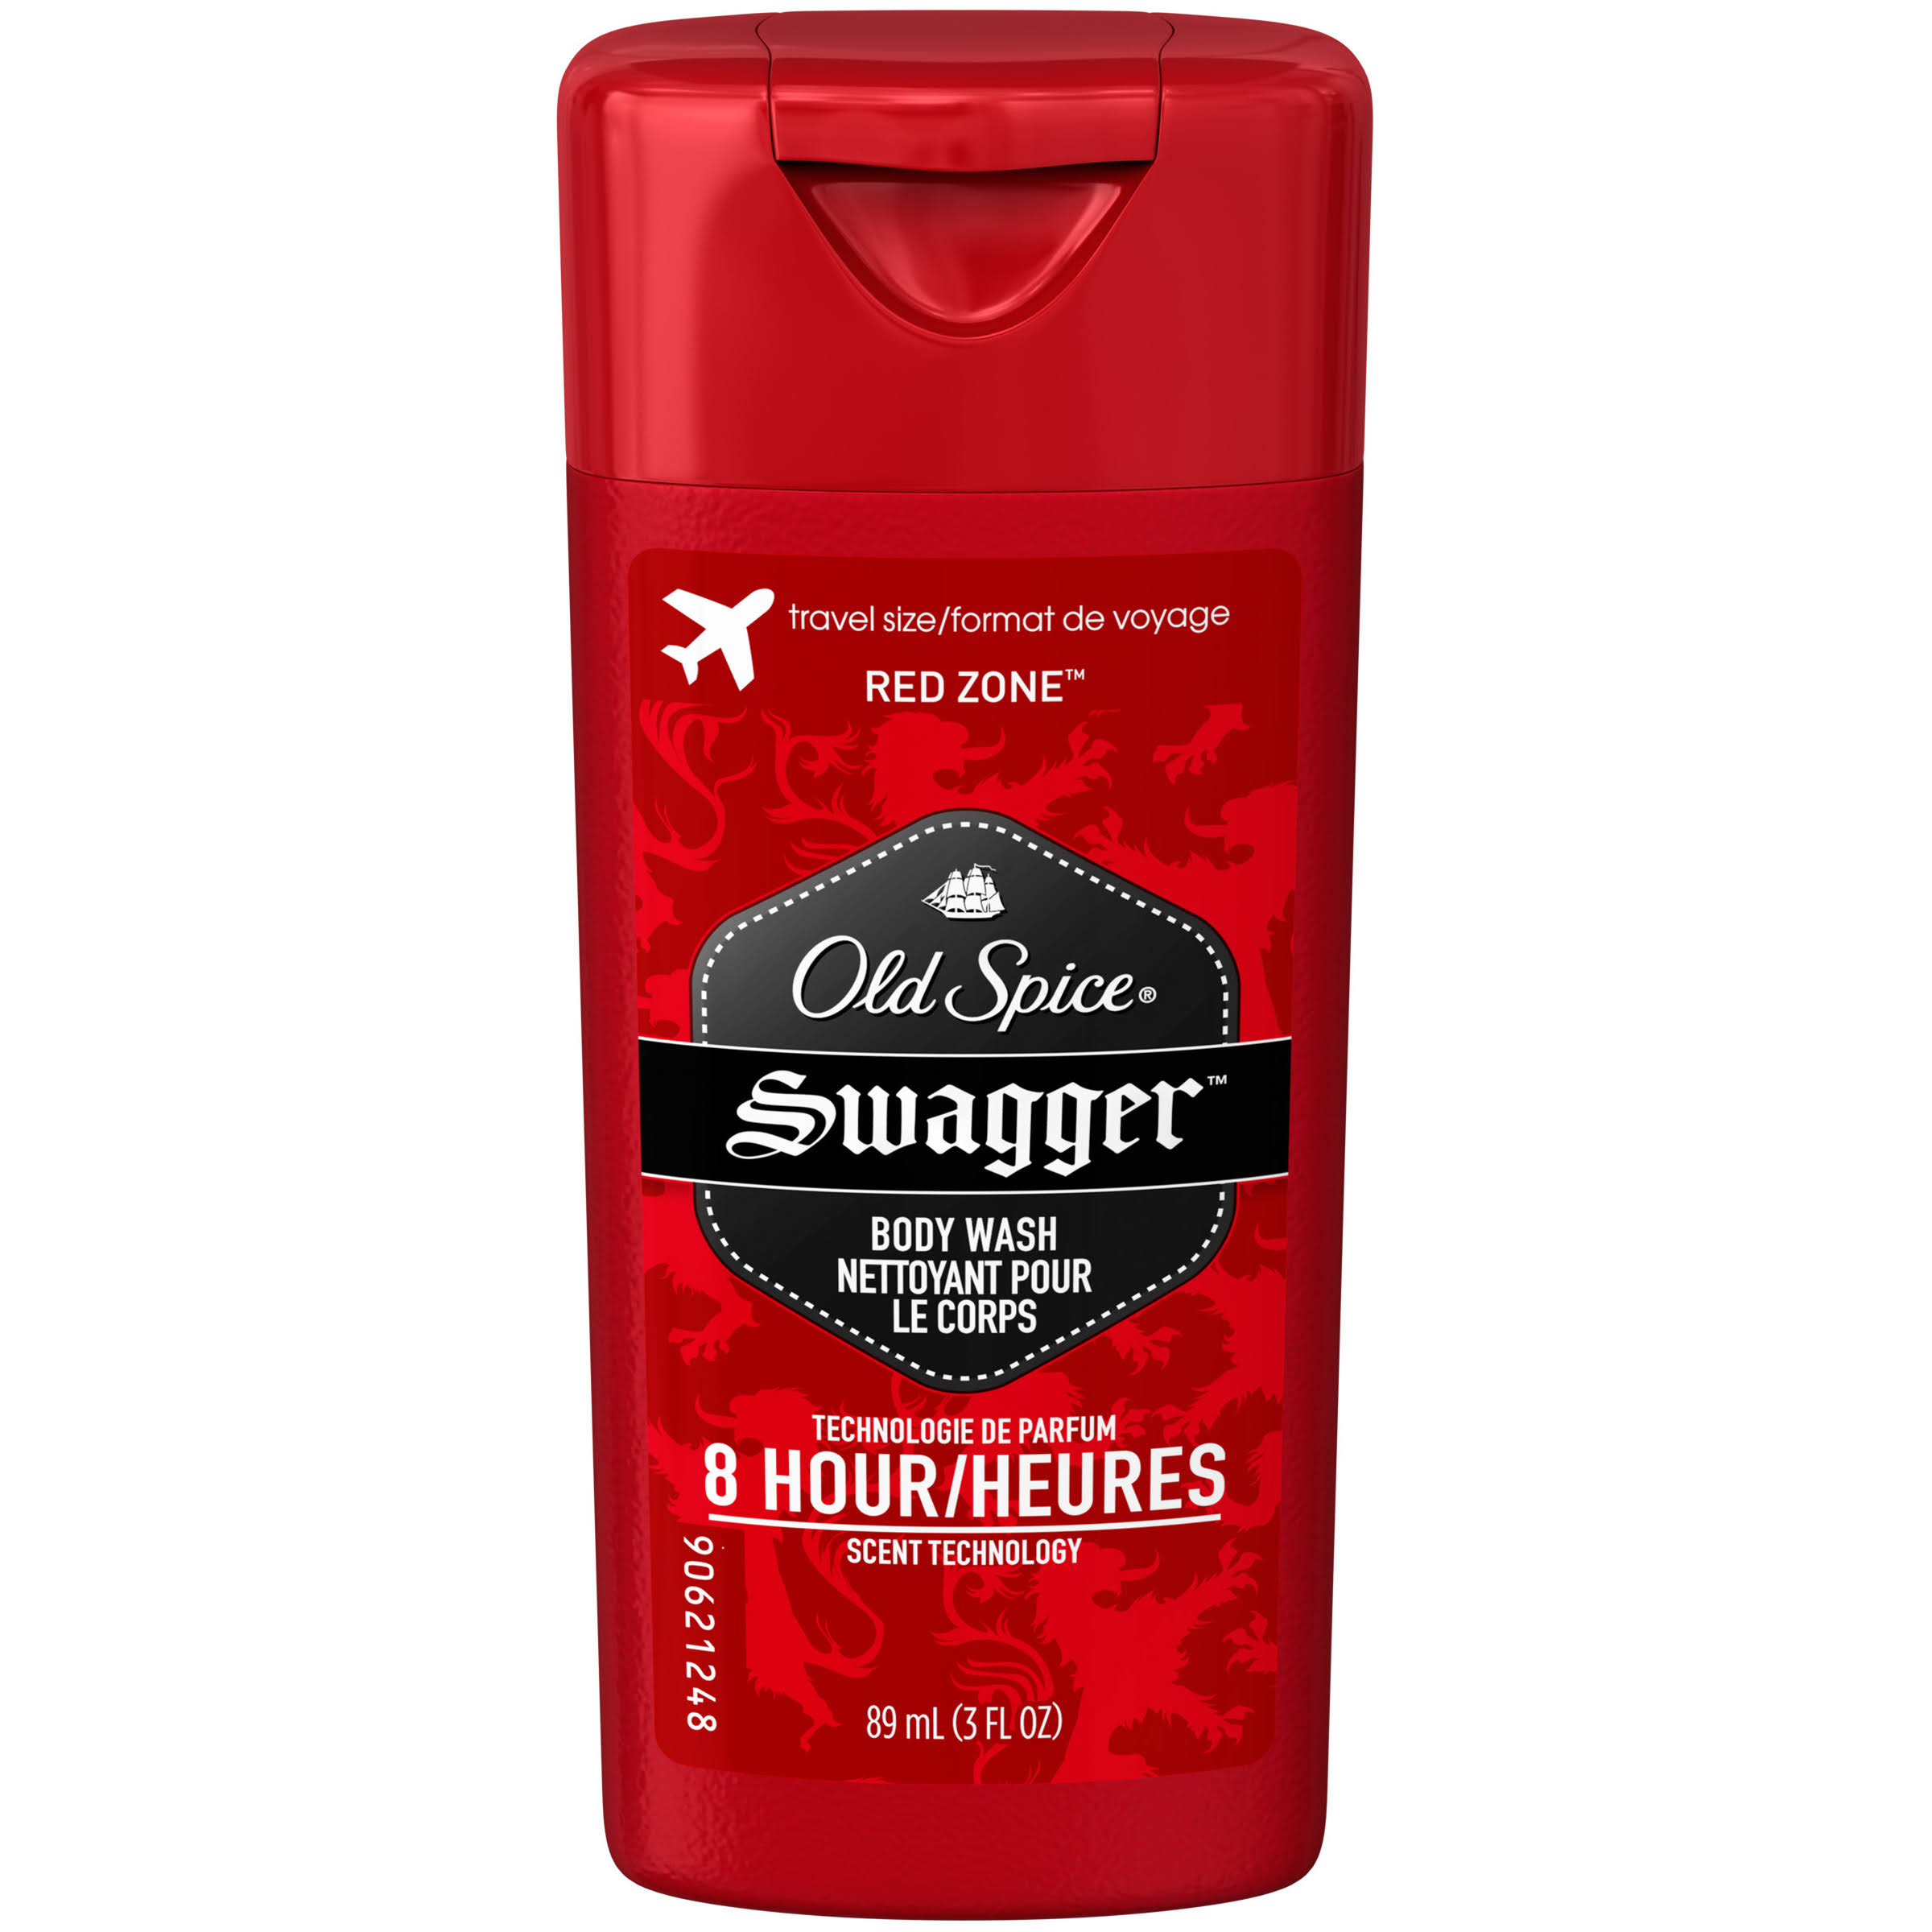 Old Spice Red Zone Men's Body Wash - Swagger Scent, 3oz